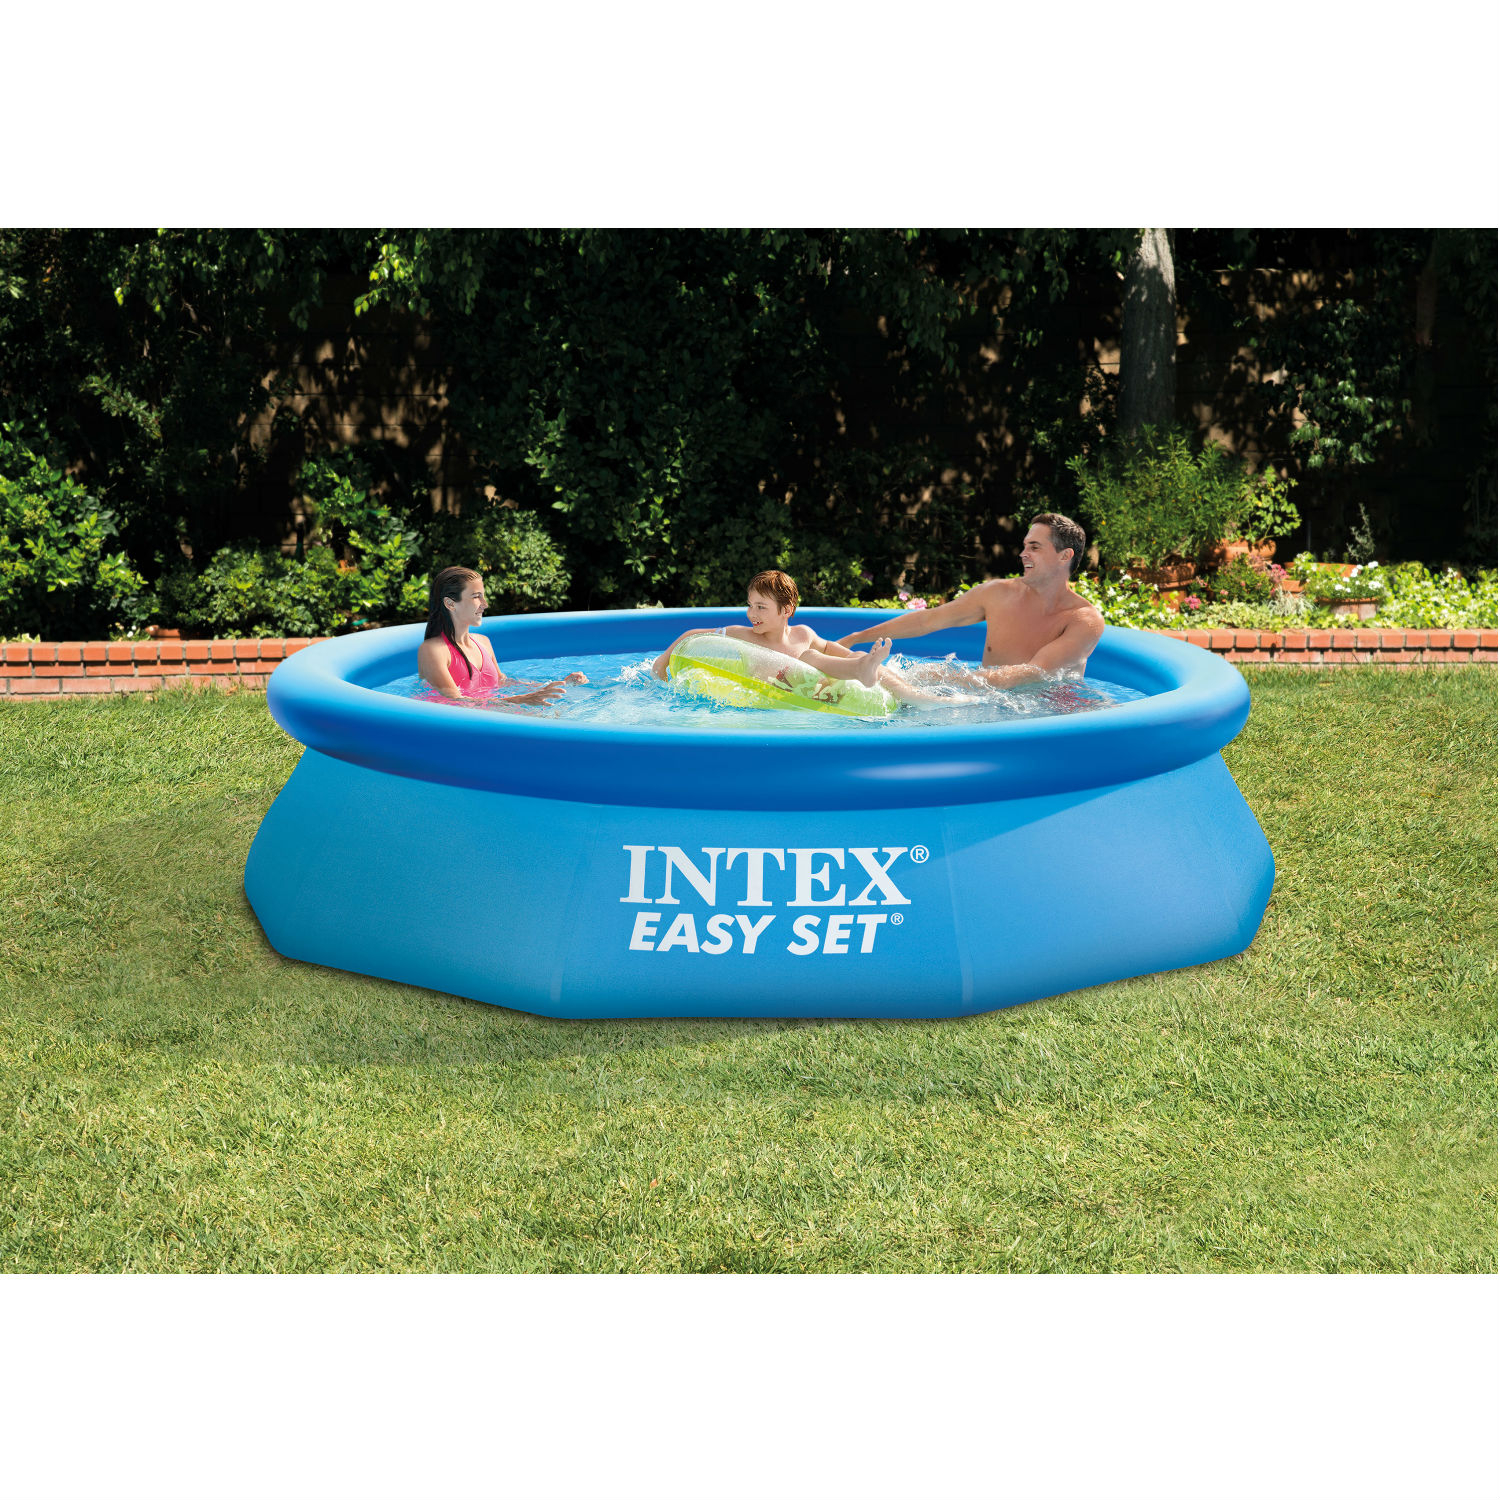 Vidaxl Pool Filterpumpe Details About Easy Set 13 X 33 Above Ground Pool W Filter Pump Outdoor Family Swimming Pool